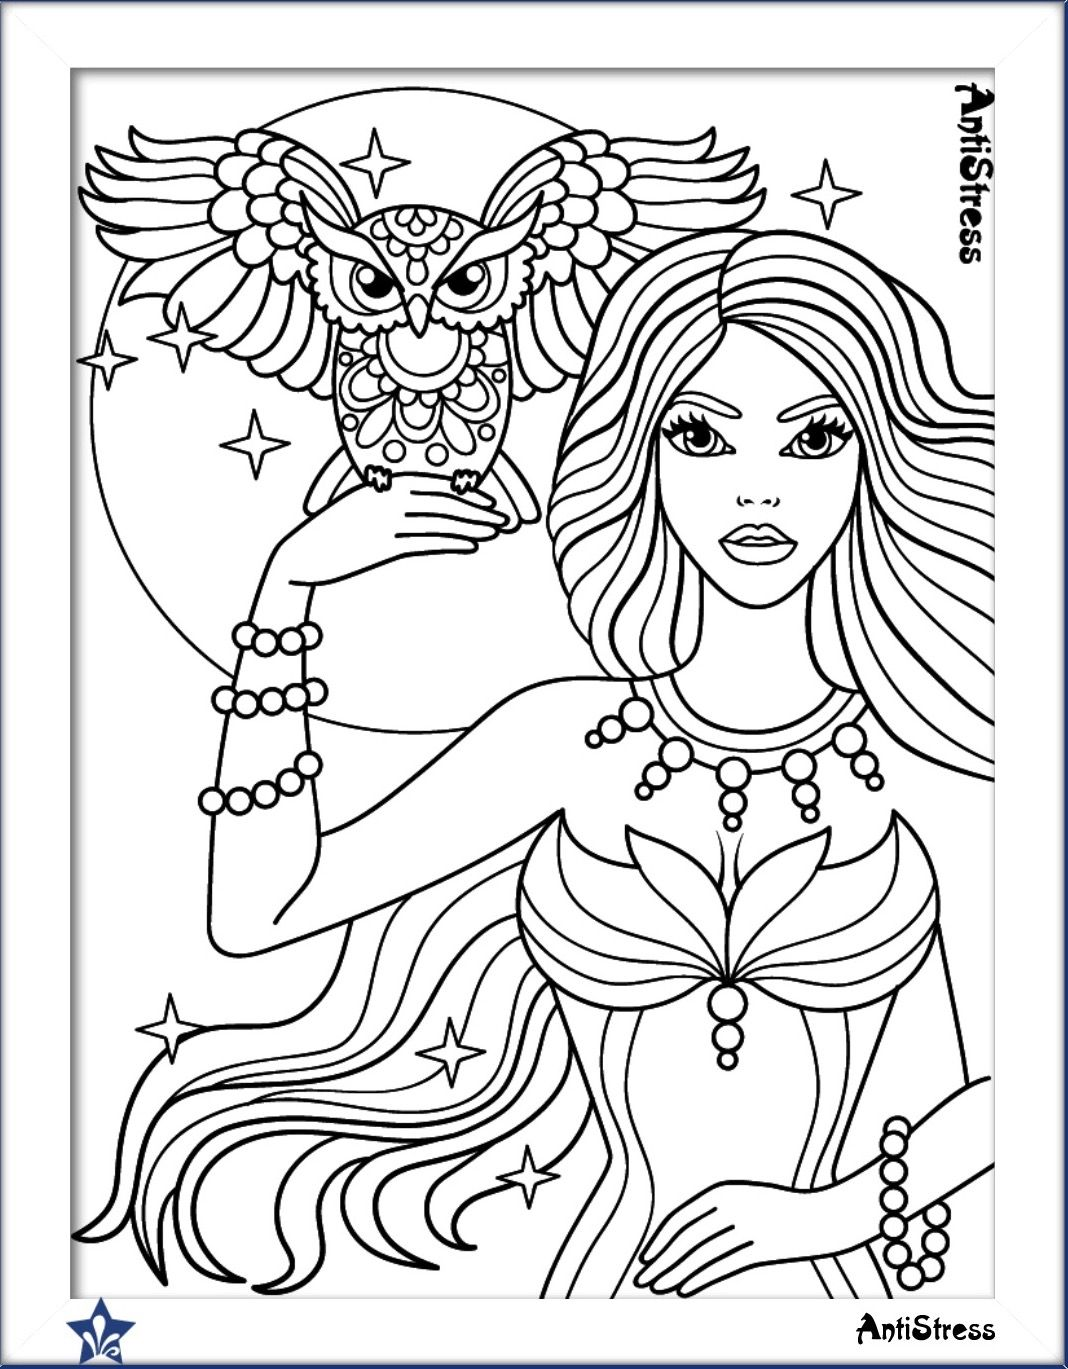 Owl and girl coloring page Coloring pages for girls, Owl